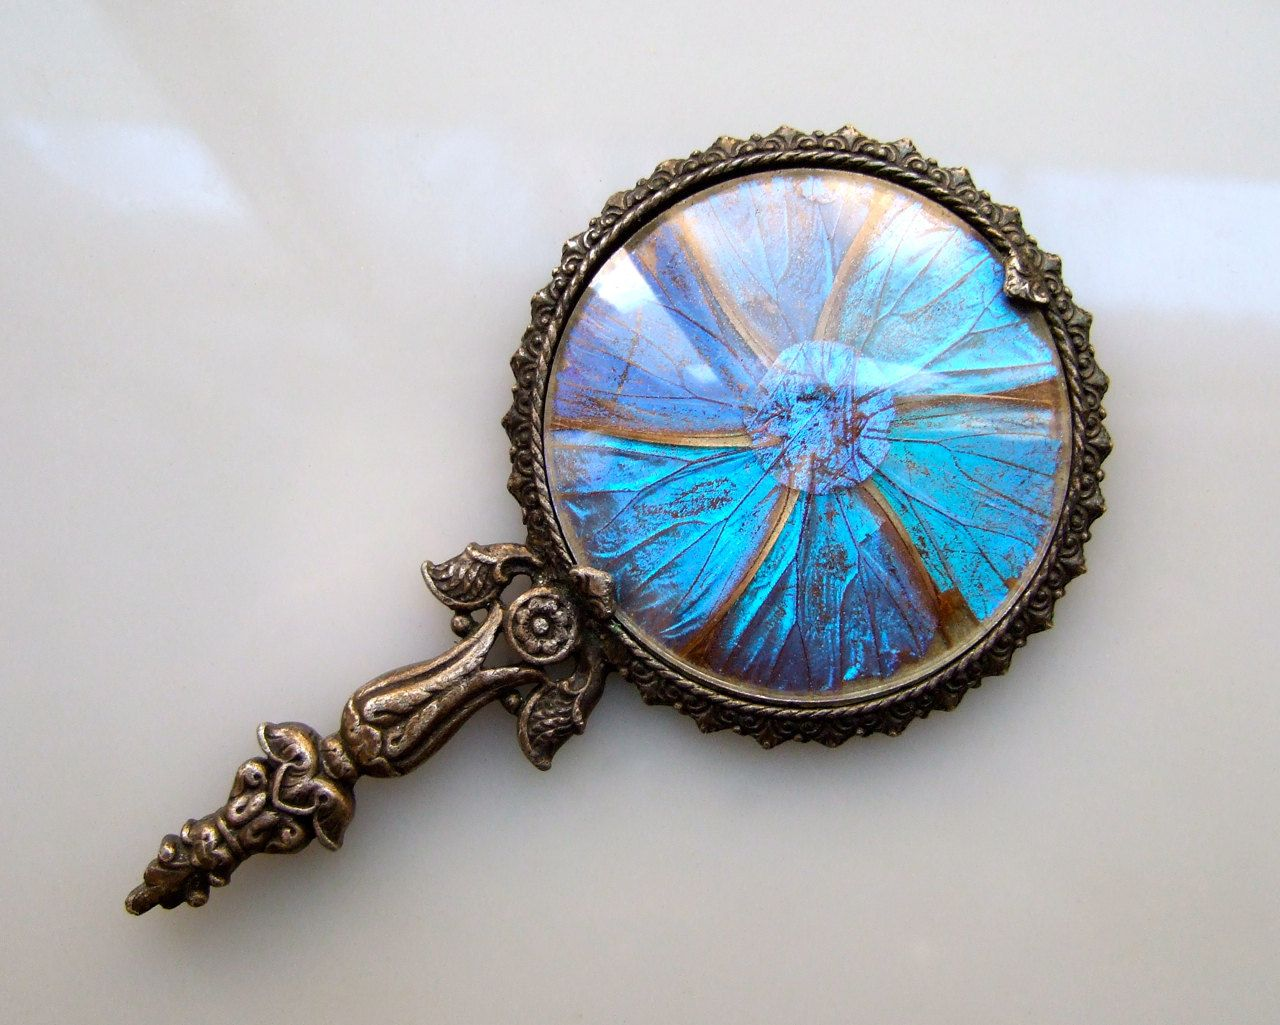 Morpho Hand Mirror Butterfly Wing Art Amp More Mirror